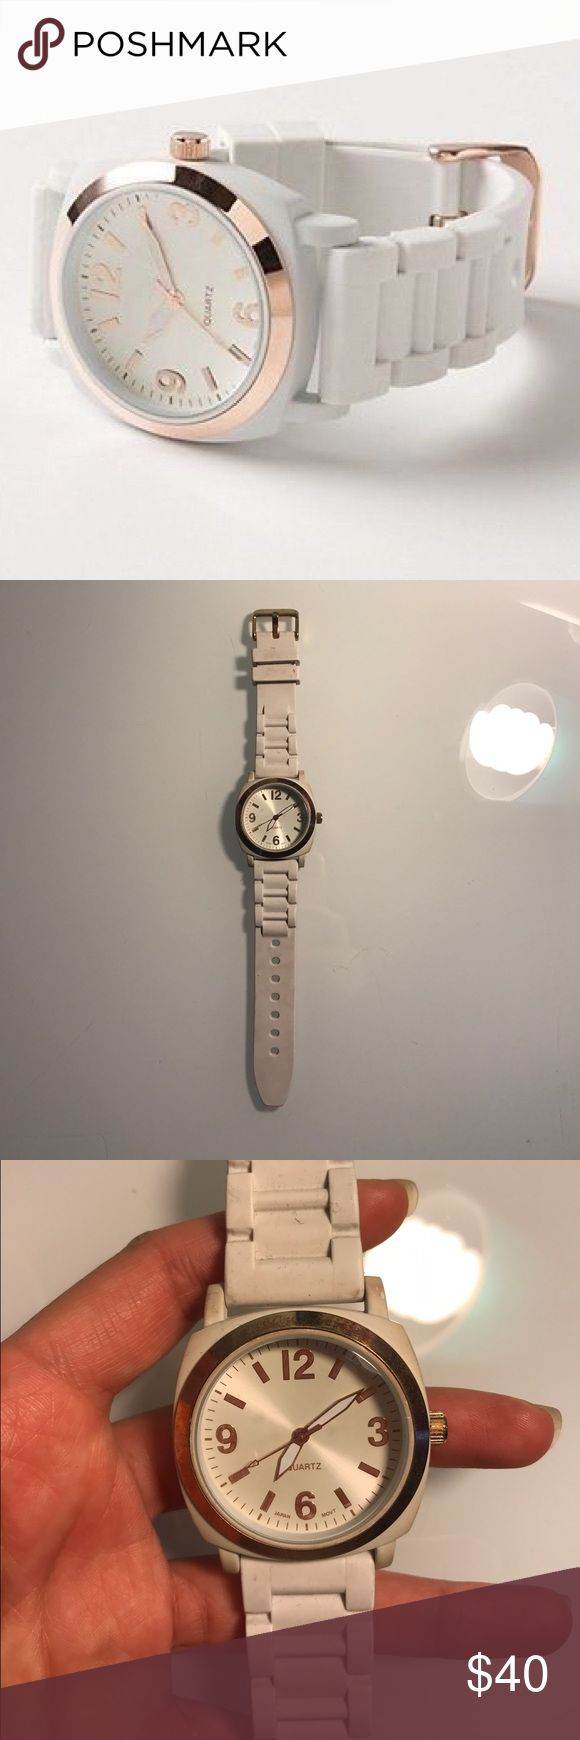 "Anthropologie Viscid Rubber Watch Good condition. ""A bright gummy strap is lent sophistication from serious gold hardware."" 9""L, 1.5 W Anthropologie Accessories Watches"